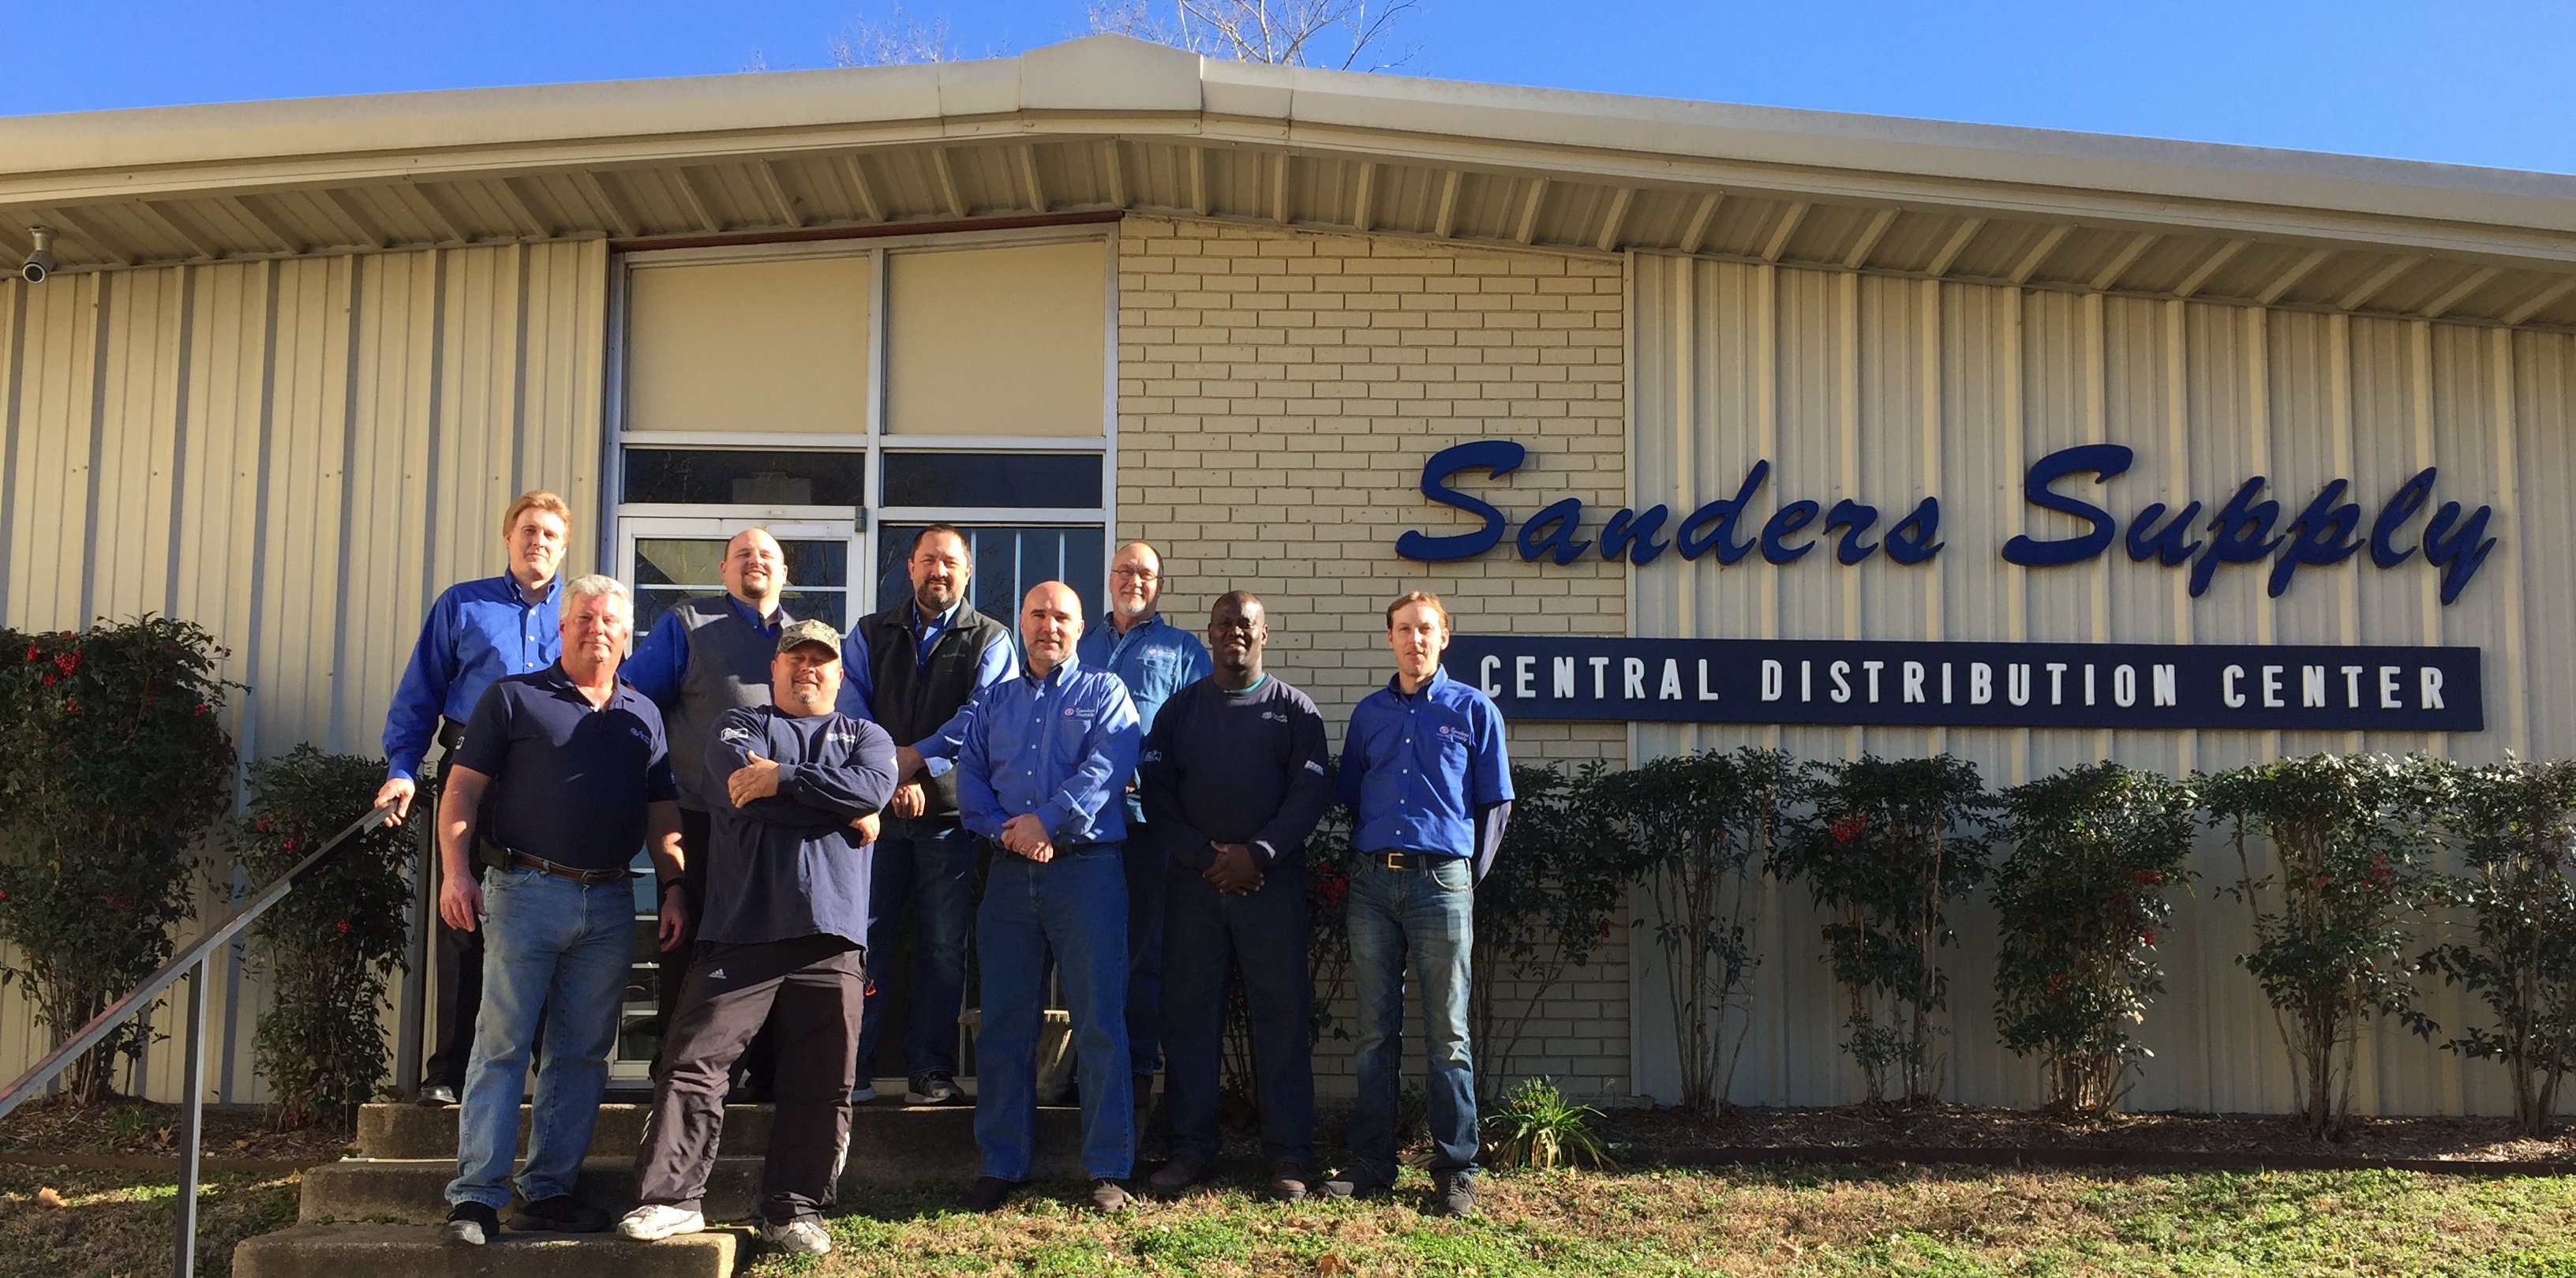 Hvac Vendor Sanders Plumbing Lighting Hot Springs Arkansas